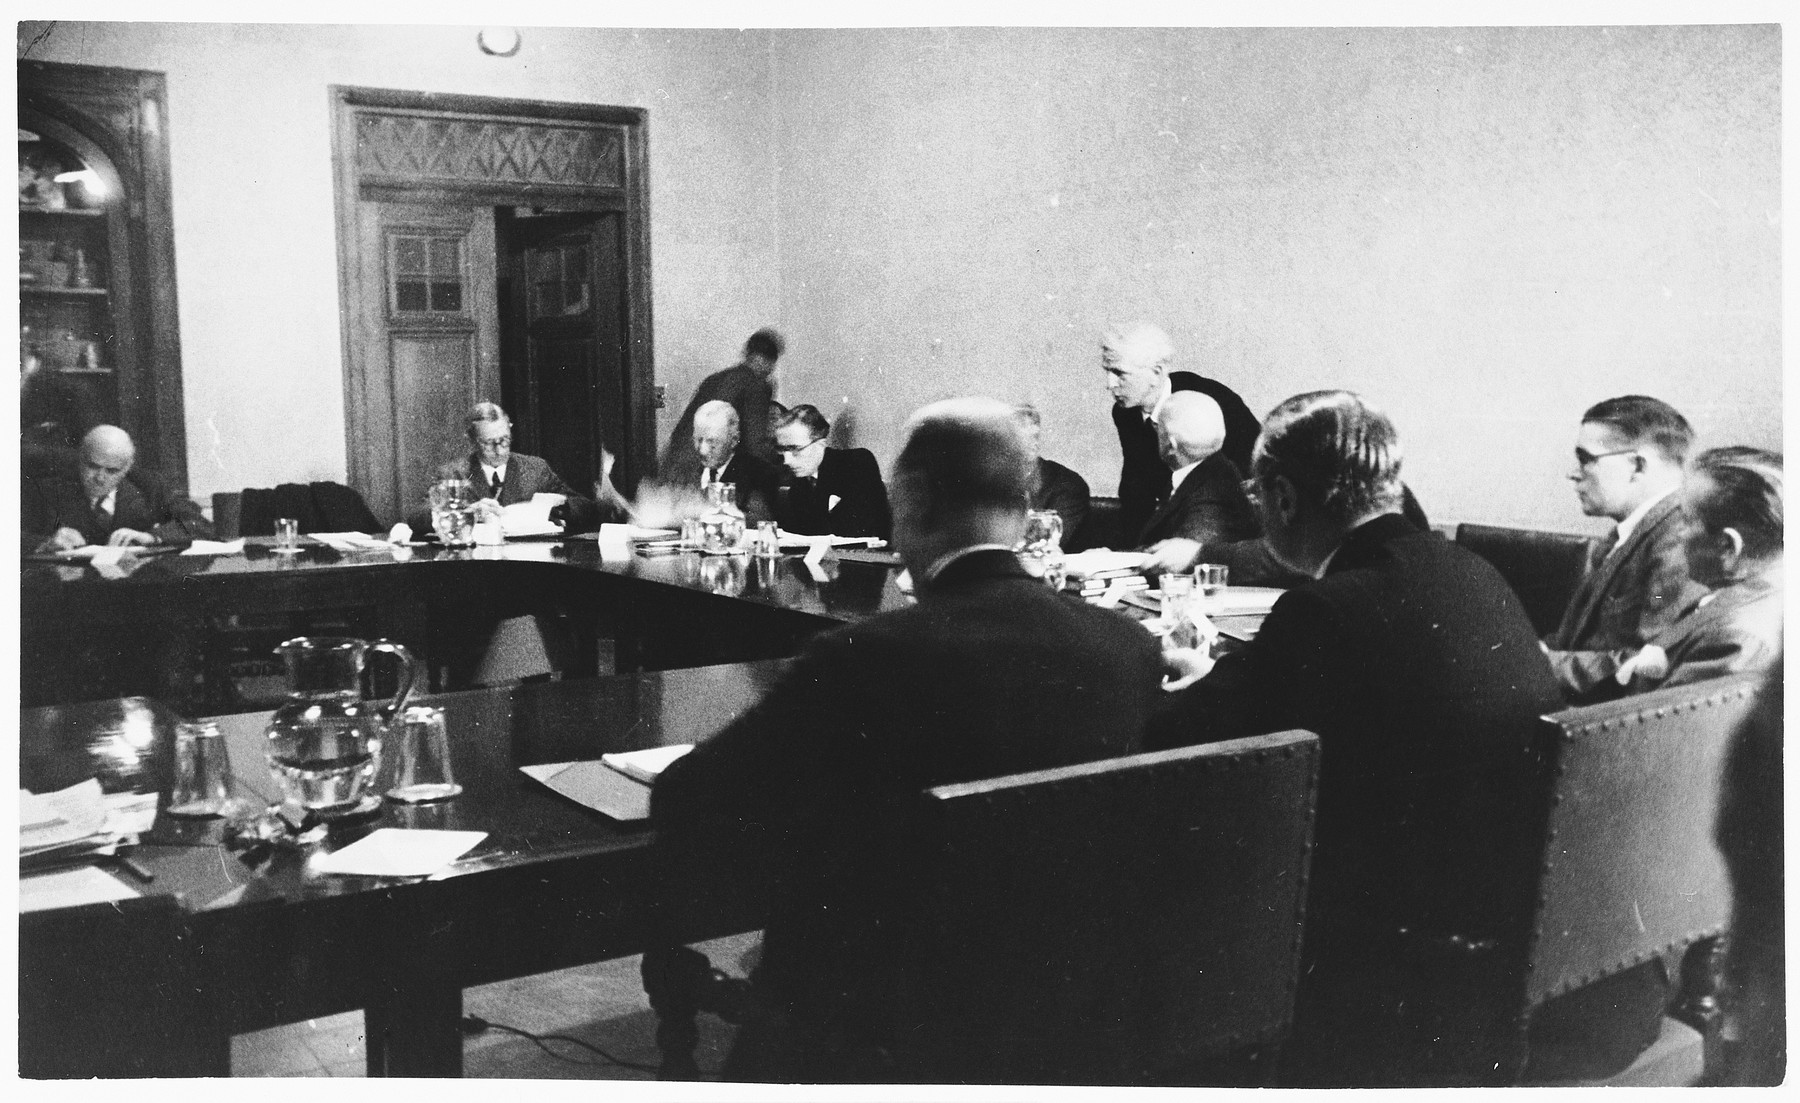 James McDonald converses with committee members at a hearing conducted by the Anglo-American Committee of Inquiry on Palestine at the YMCA building in Jerusalem.